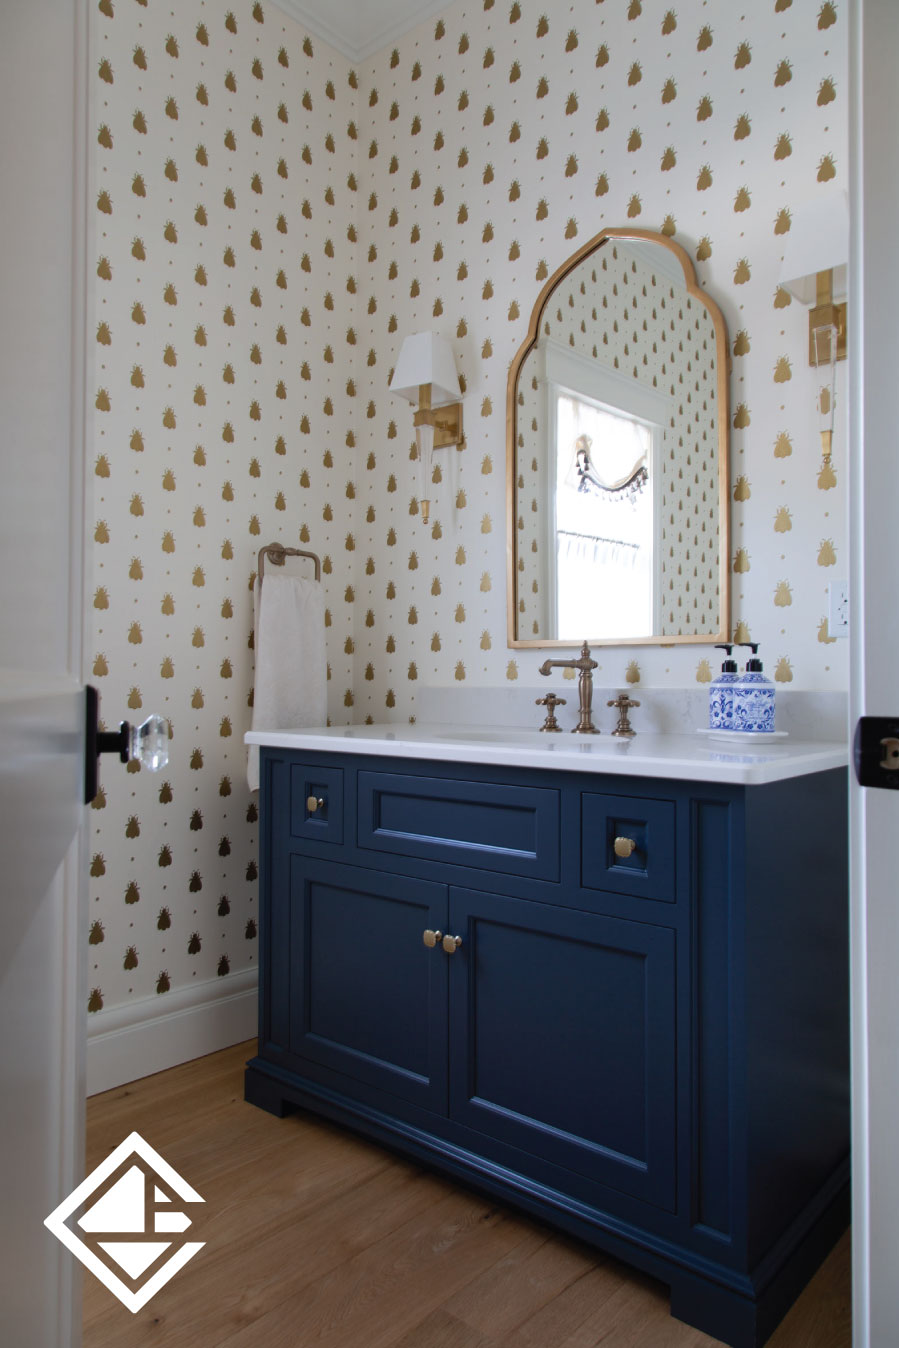 This navy blue custom vanity provides the perfect contrast